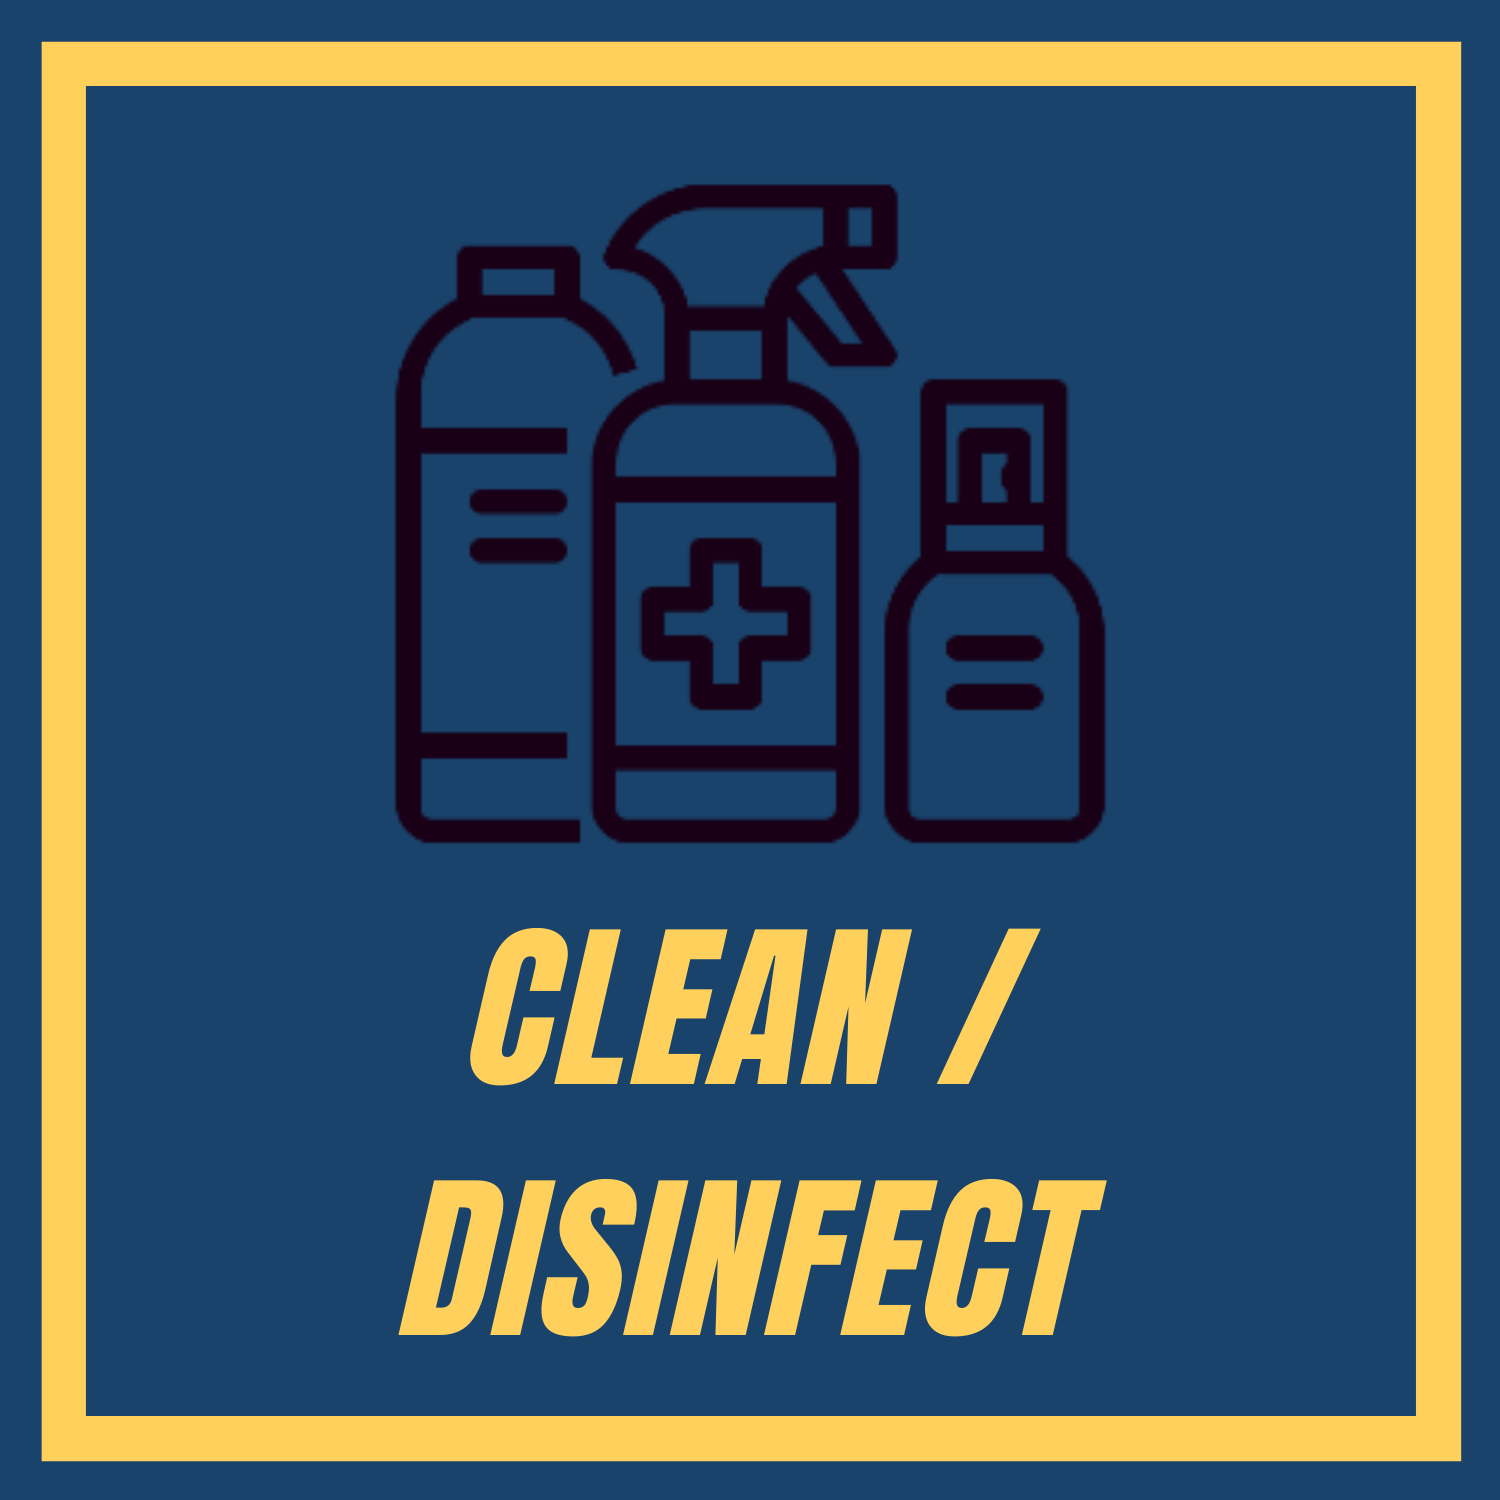 Clean/Disinfect Definition